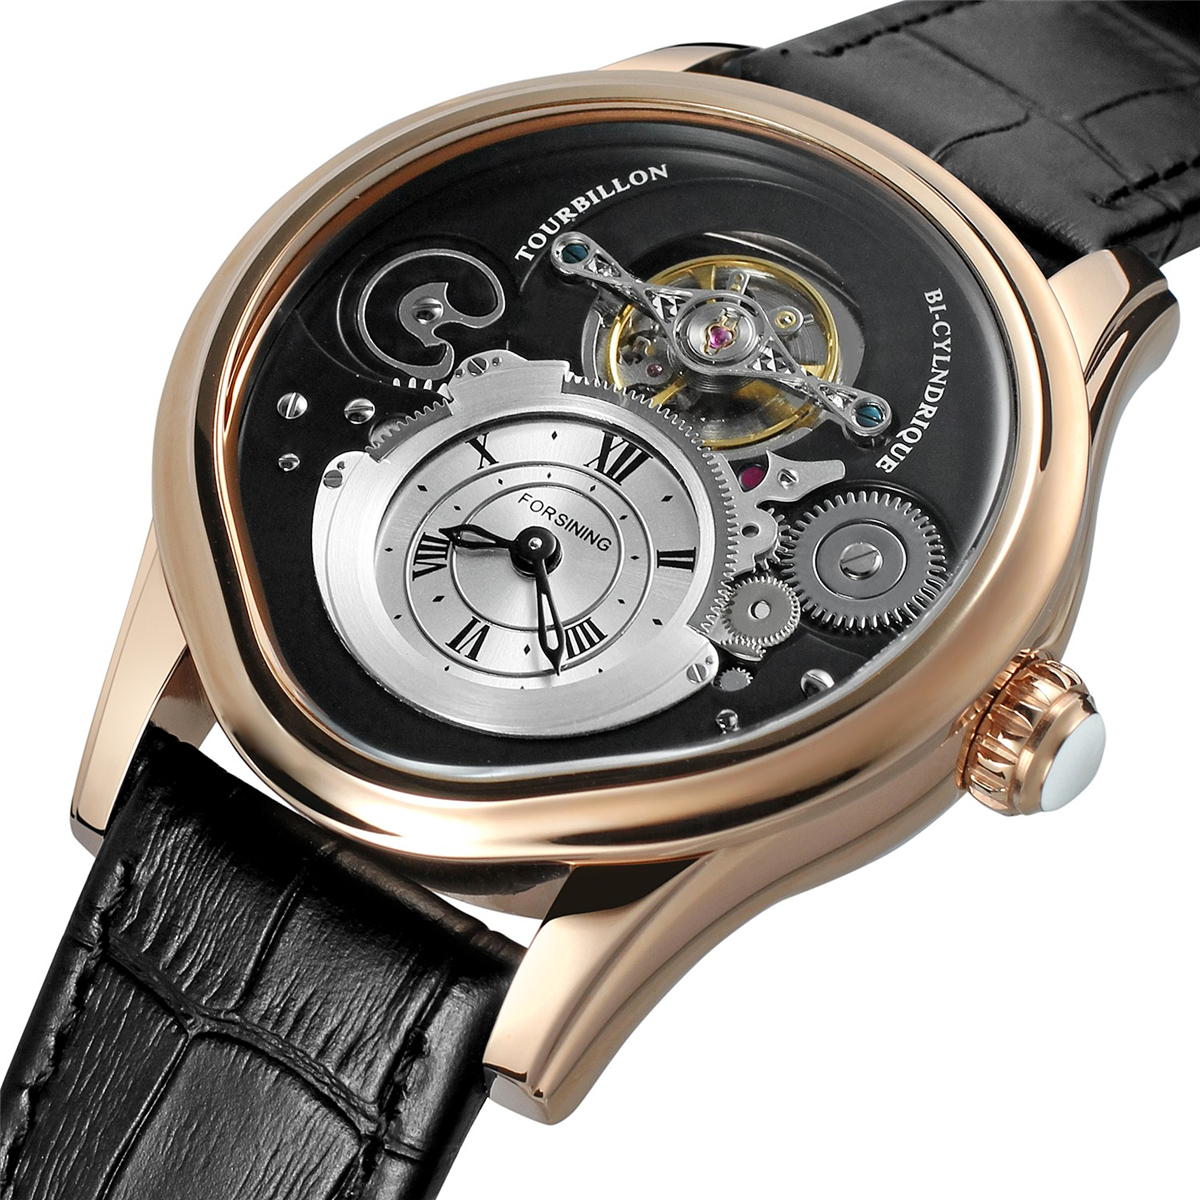 FORSINING Tourbillon Mens Top Brand Luxury Automatic Mechanical Watch Men Leather Strap Gold Case Business Waterproof Watches forsining famous brand watch 2018 new luxury men automatic watches gold case dial genuine leather strap fashion tourbillon watch